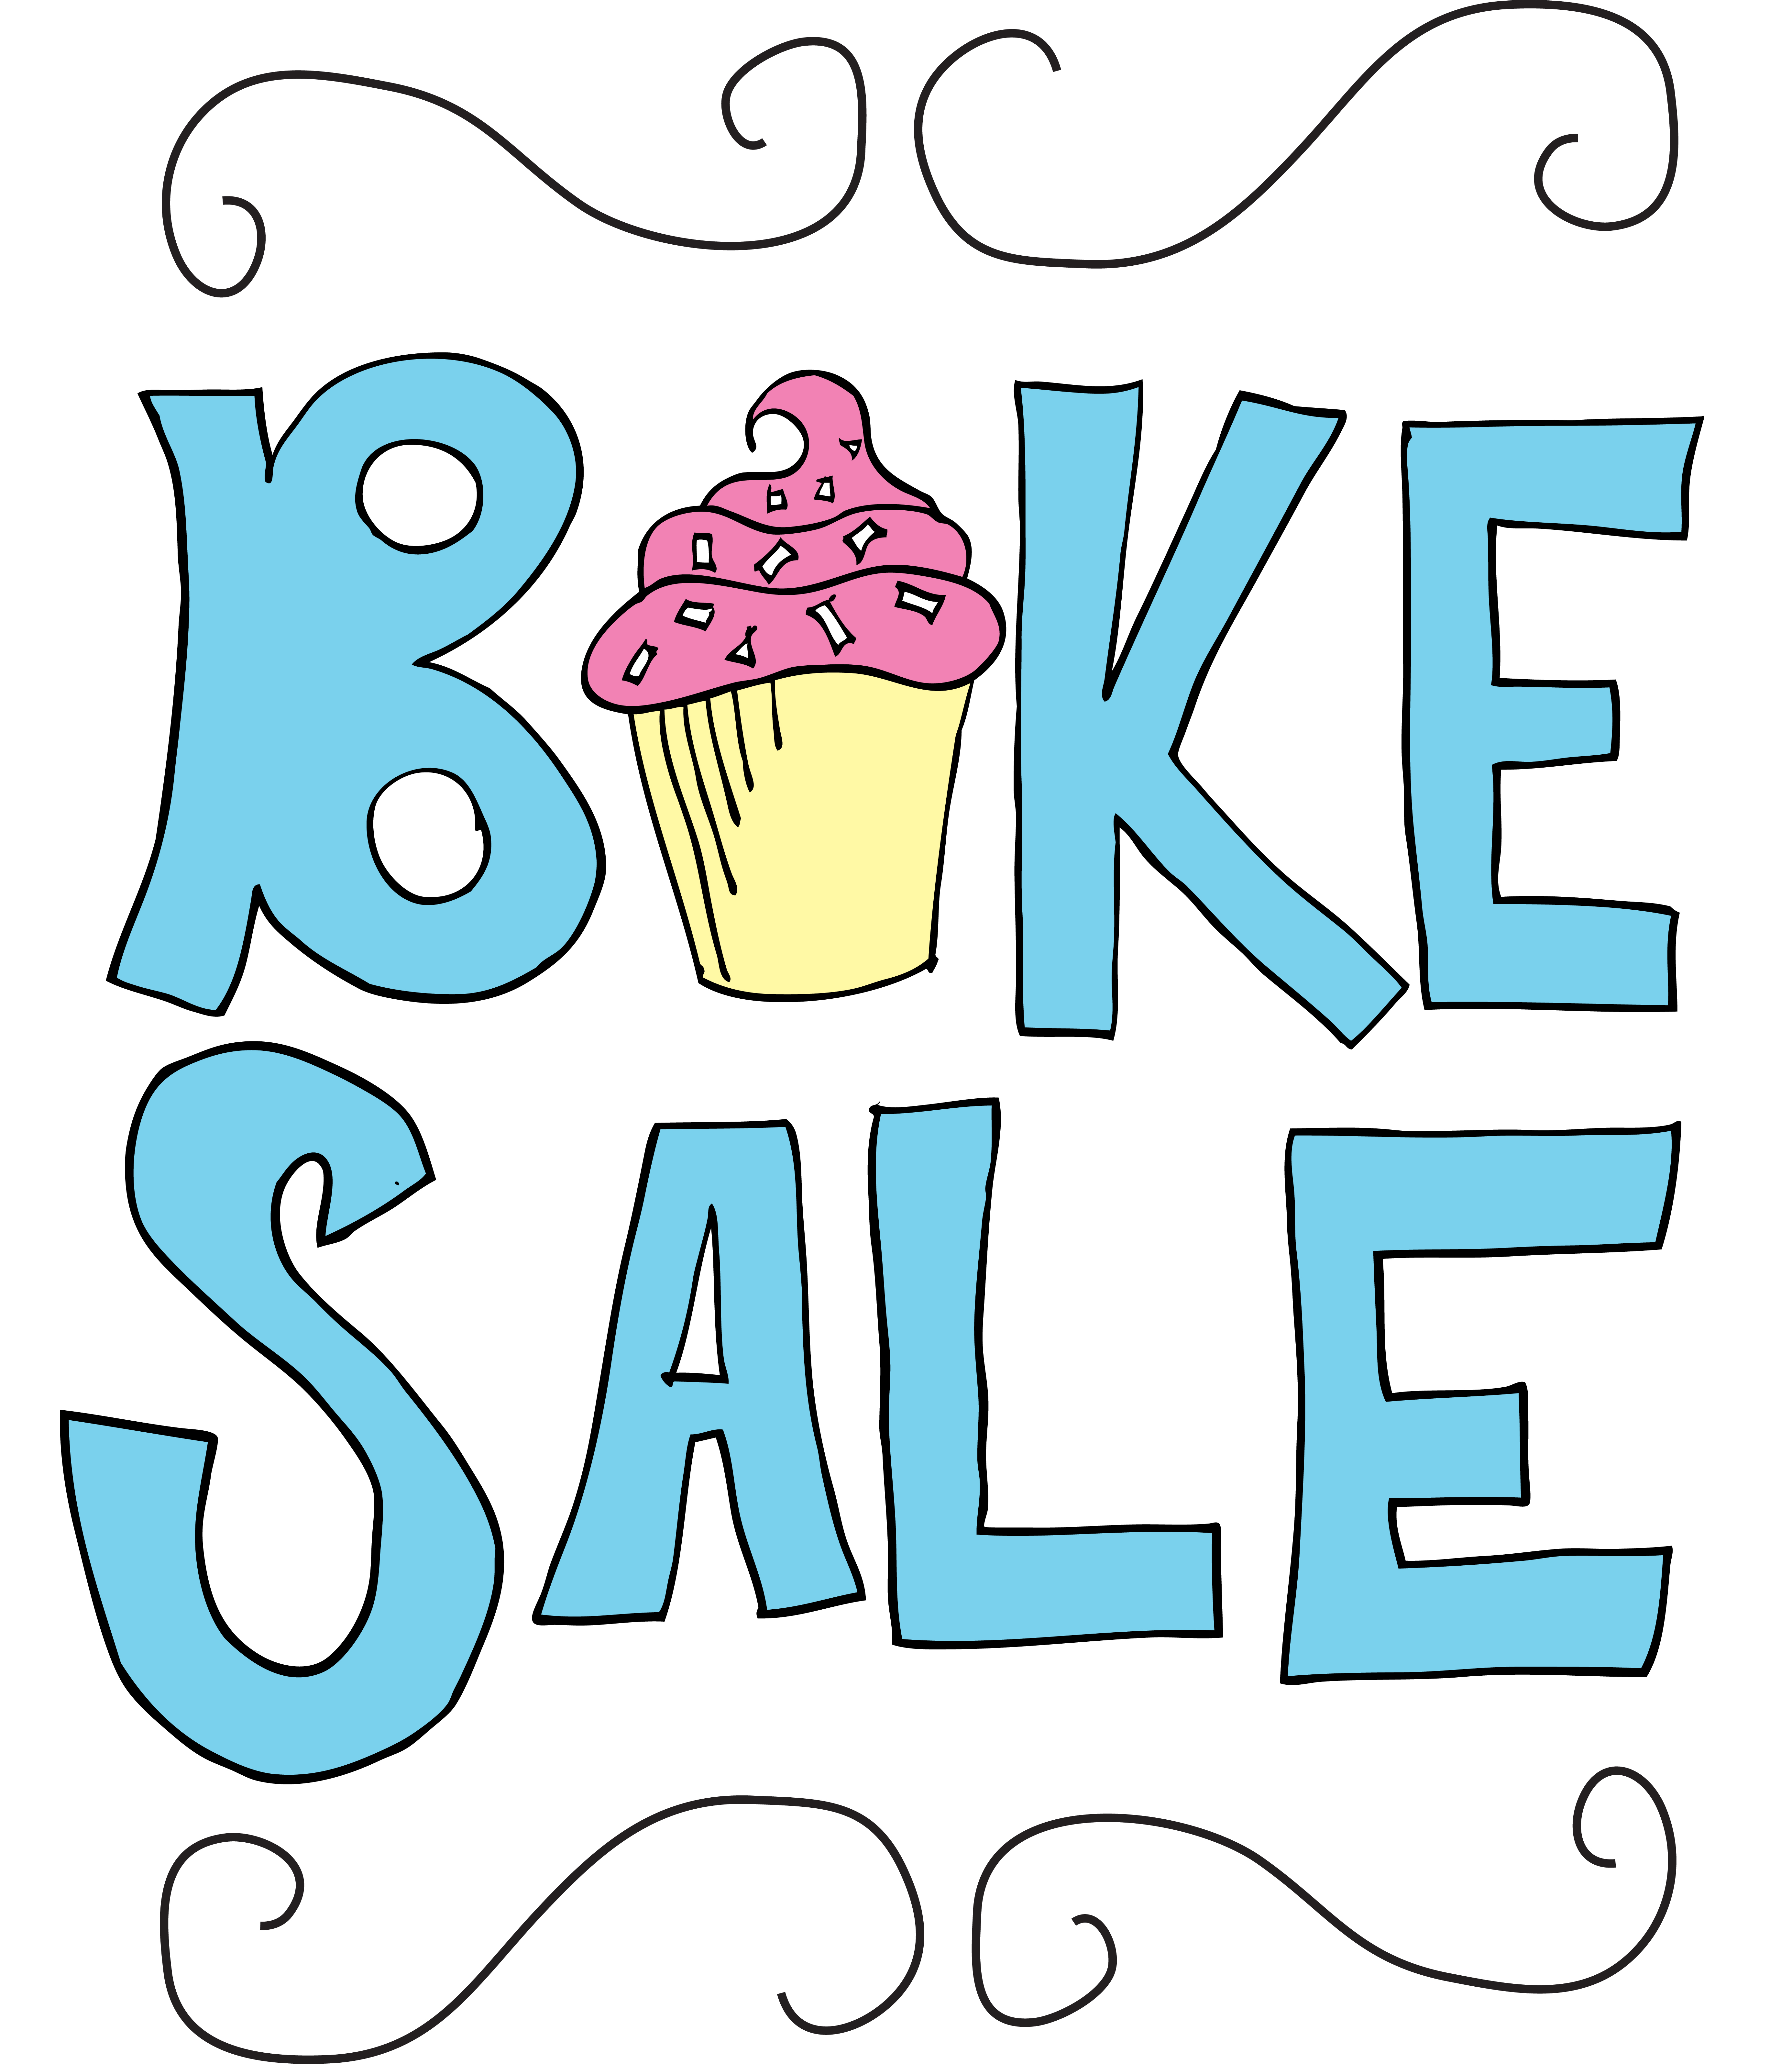 bake sign clipart clipart kid bake items st louis property plus